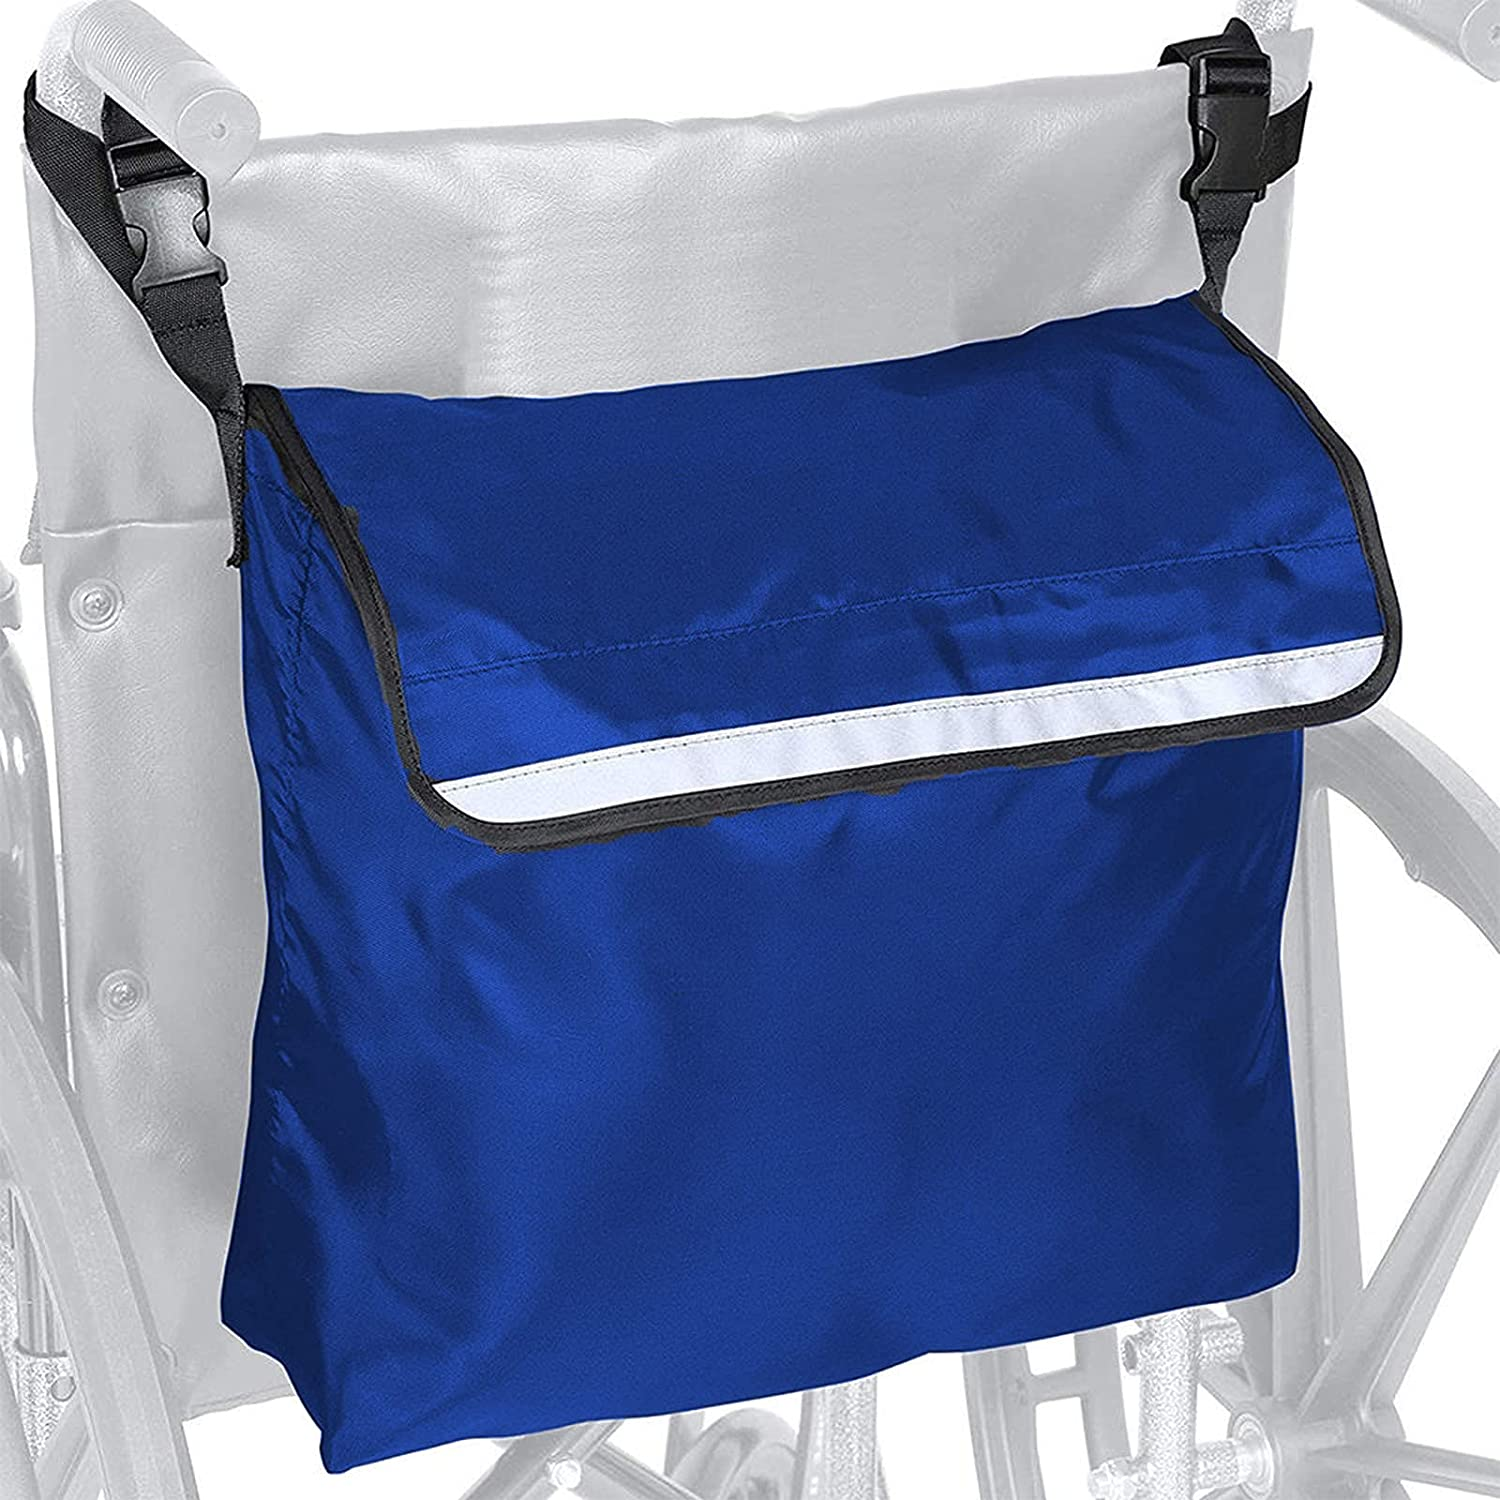 Limited price 35% OFF sale WHCL Wheelchair Bag Storage Car Back